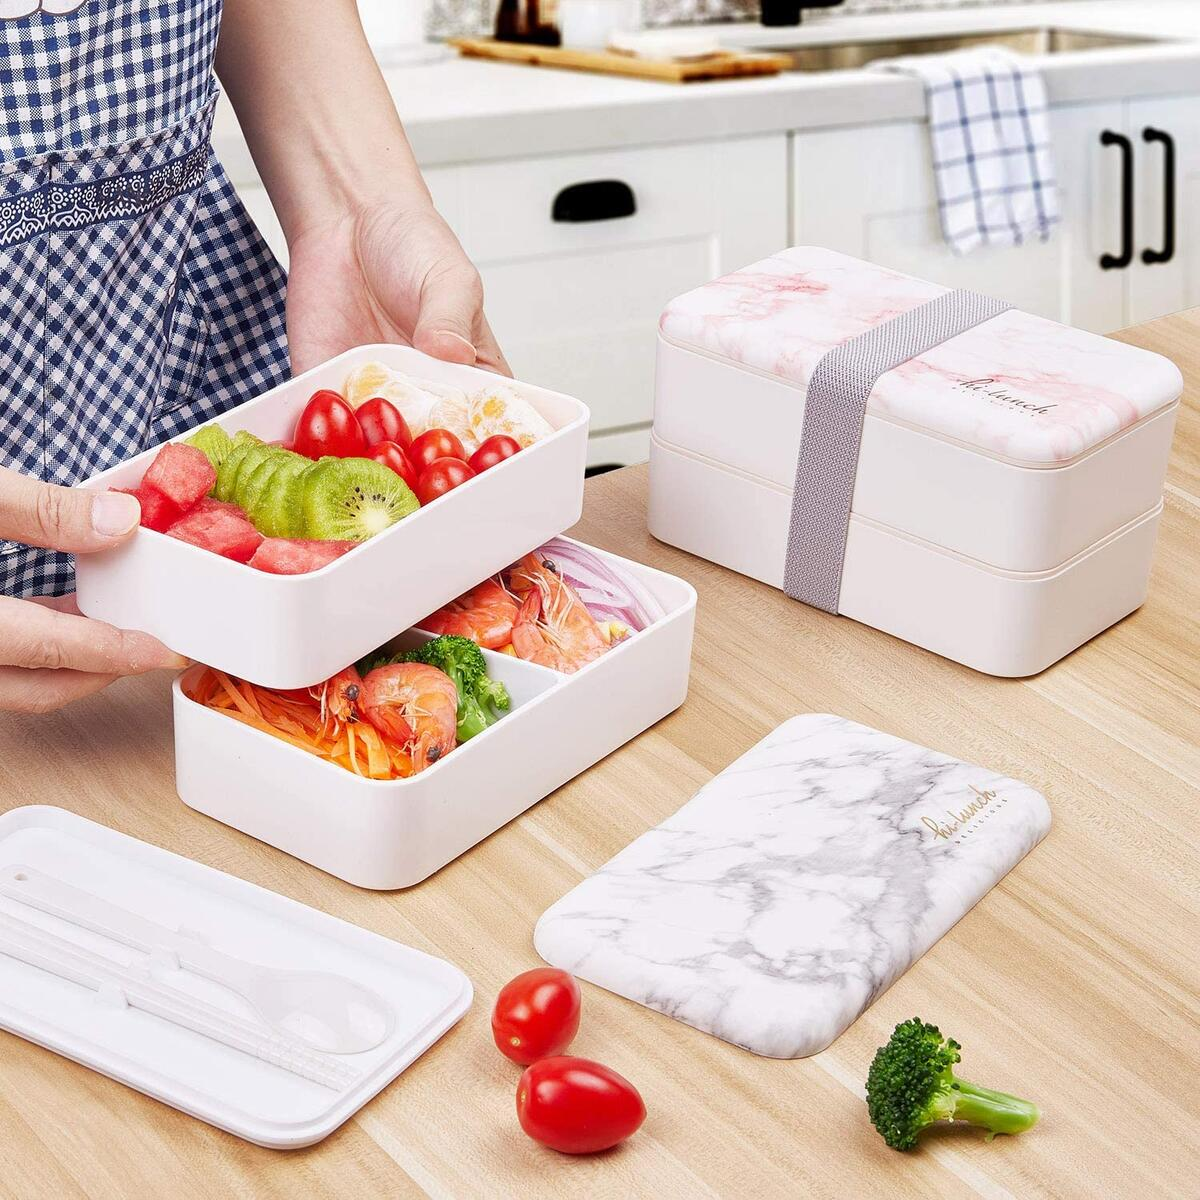 Stackable Bento Lunch Box Container - All-in-One Sleek and Modern Bento-Style Design Includes 2 Stackable Containers, Built-in Plastic Utensil Set, Microwave and Dishwasher Safe,Easy Wash(White)